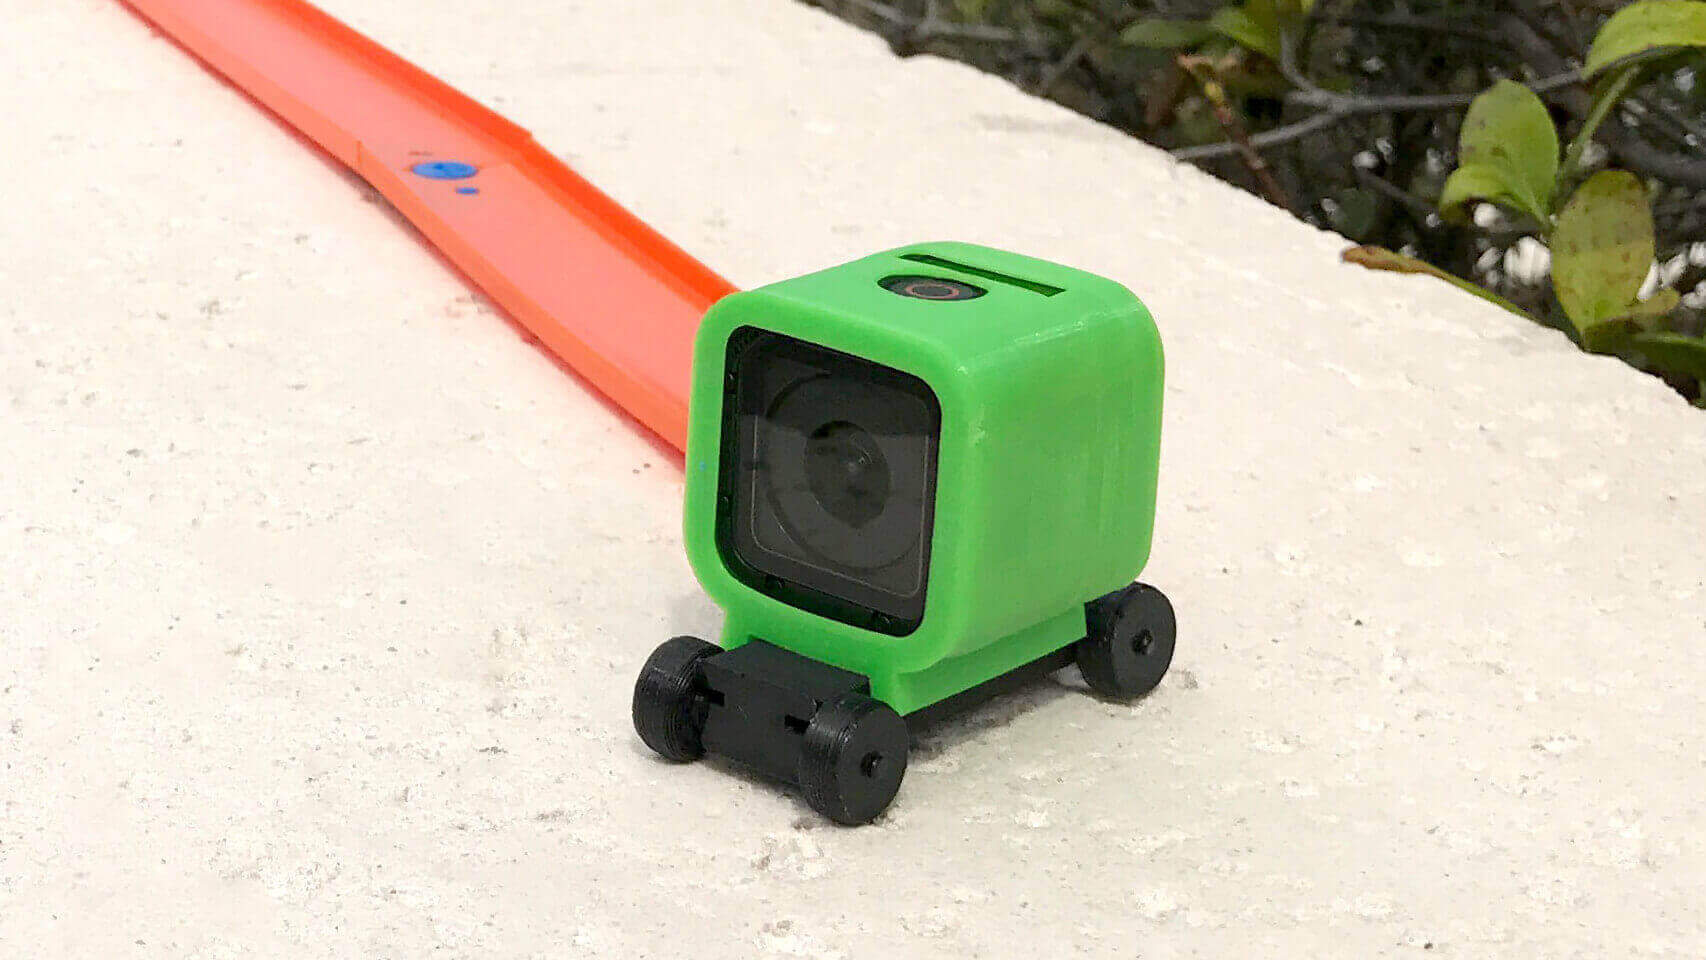 3D Printed Hot Wheels GoPro Mount for Thrills and Spills | All3DP